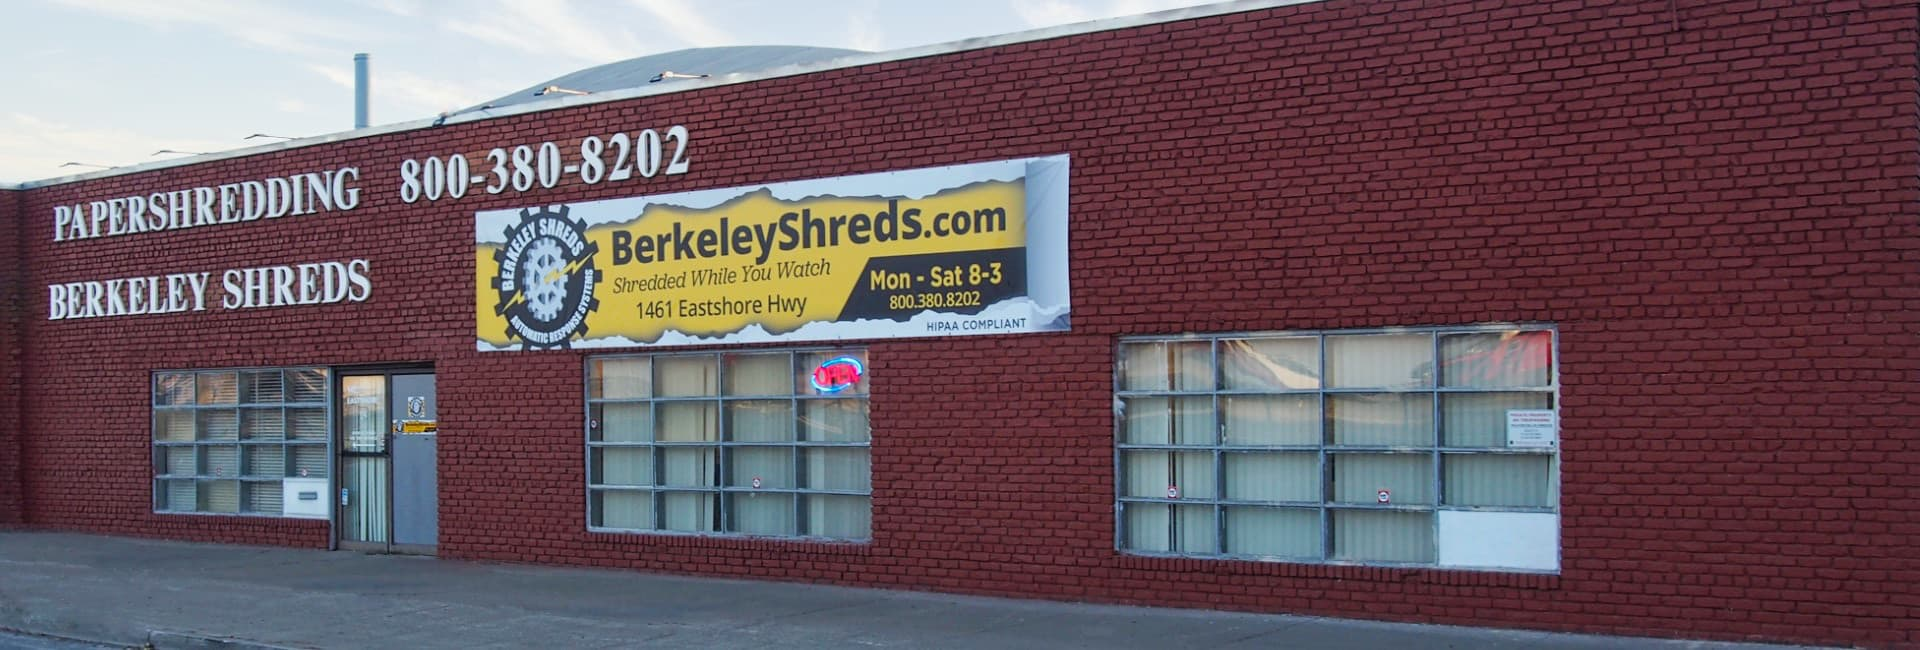 Berkeley Shreds Building - Website